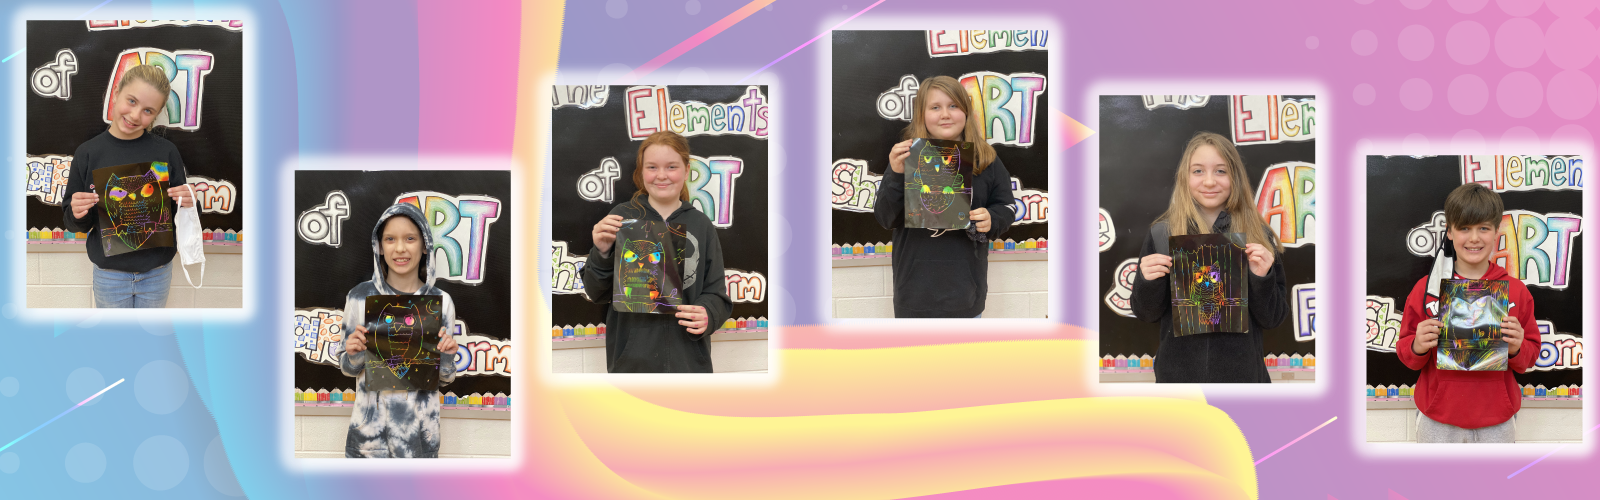 VWES art students show off their colorful artwork